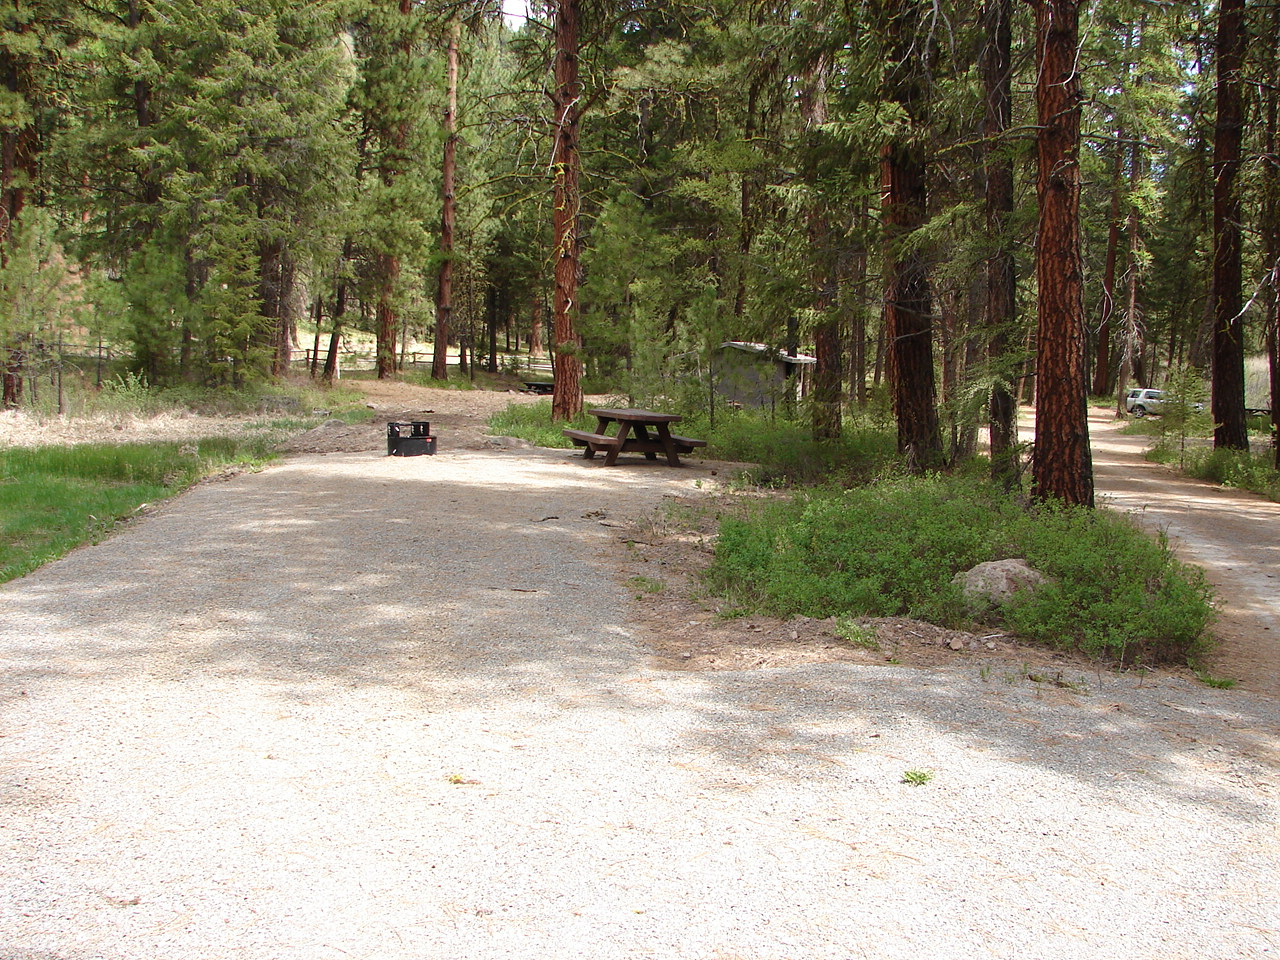 Camping site with table and firering in a pine forest